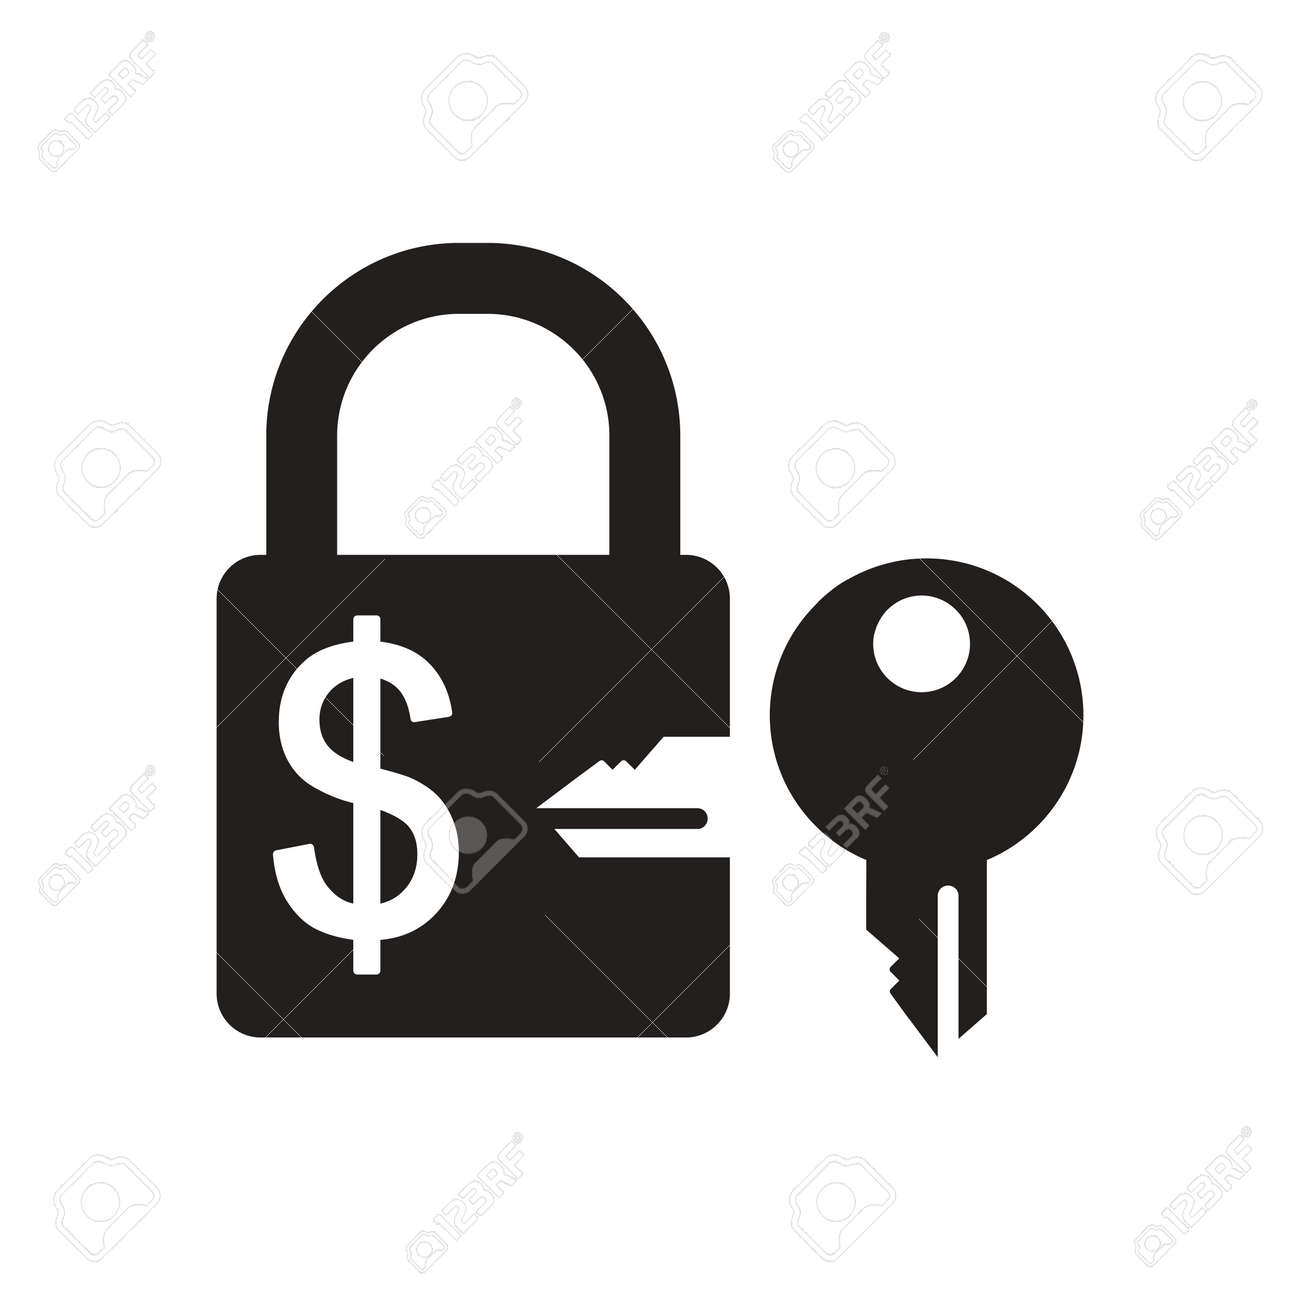 Flat Icon In Black And White Lock Key Money Royalty Free Cliparts ... for Lock And Key Clipart Black And White  157uhy